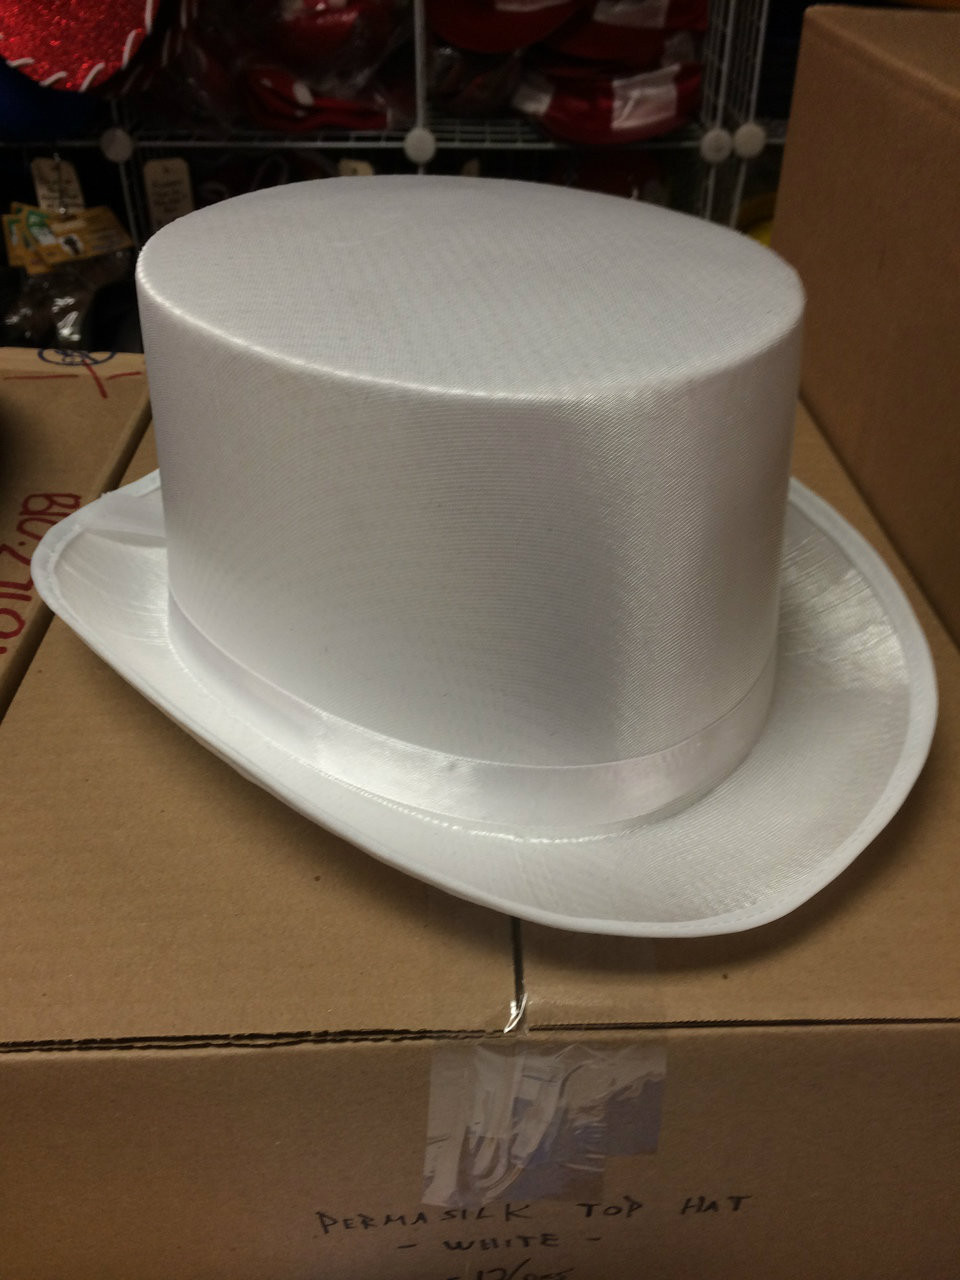 ad83a6be141 ... 12pc White Permasilk Top Hats. Image 1. Loading zoom